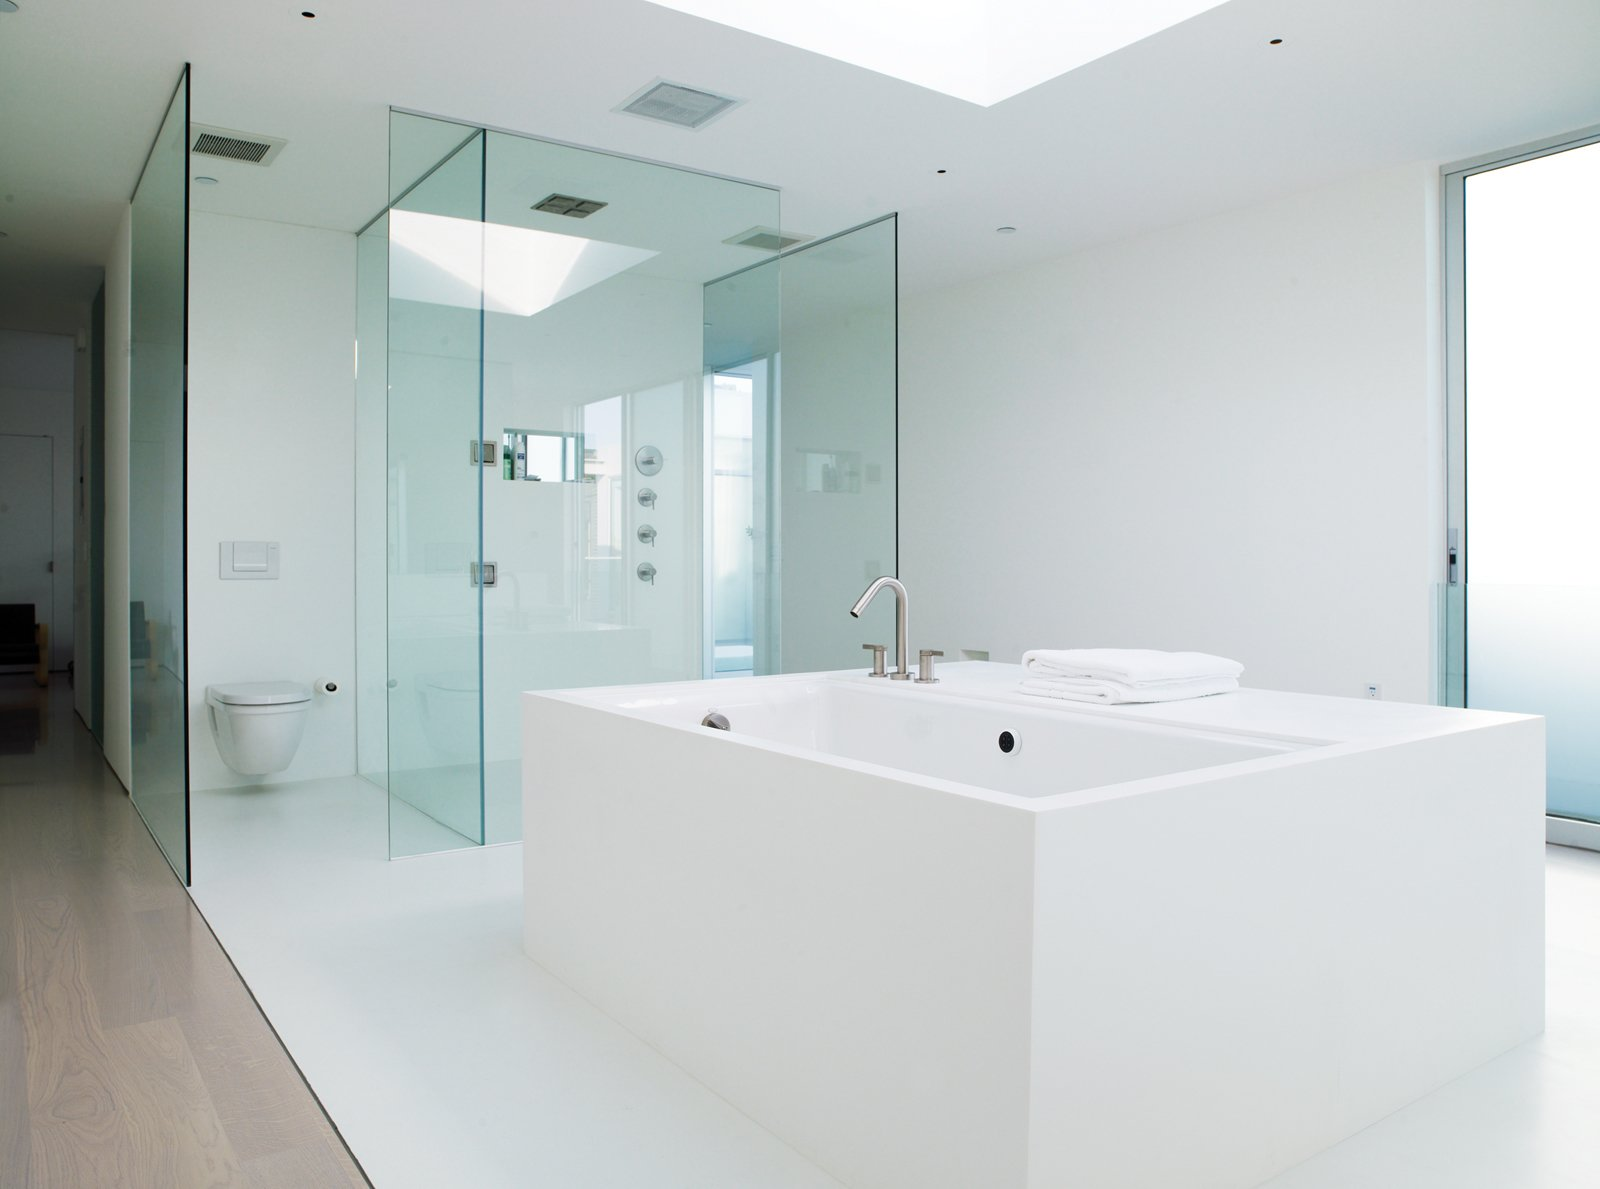 In the master bathroom, an oversize tub is graced with a generous skylight above it.